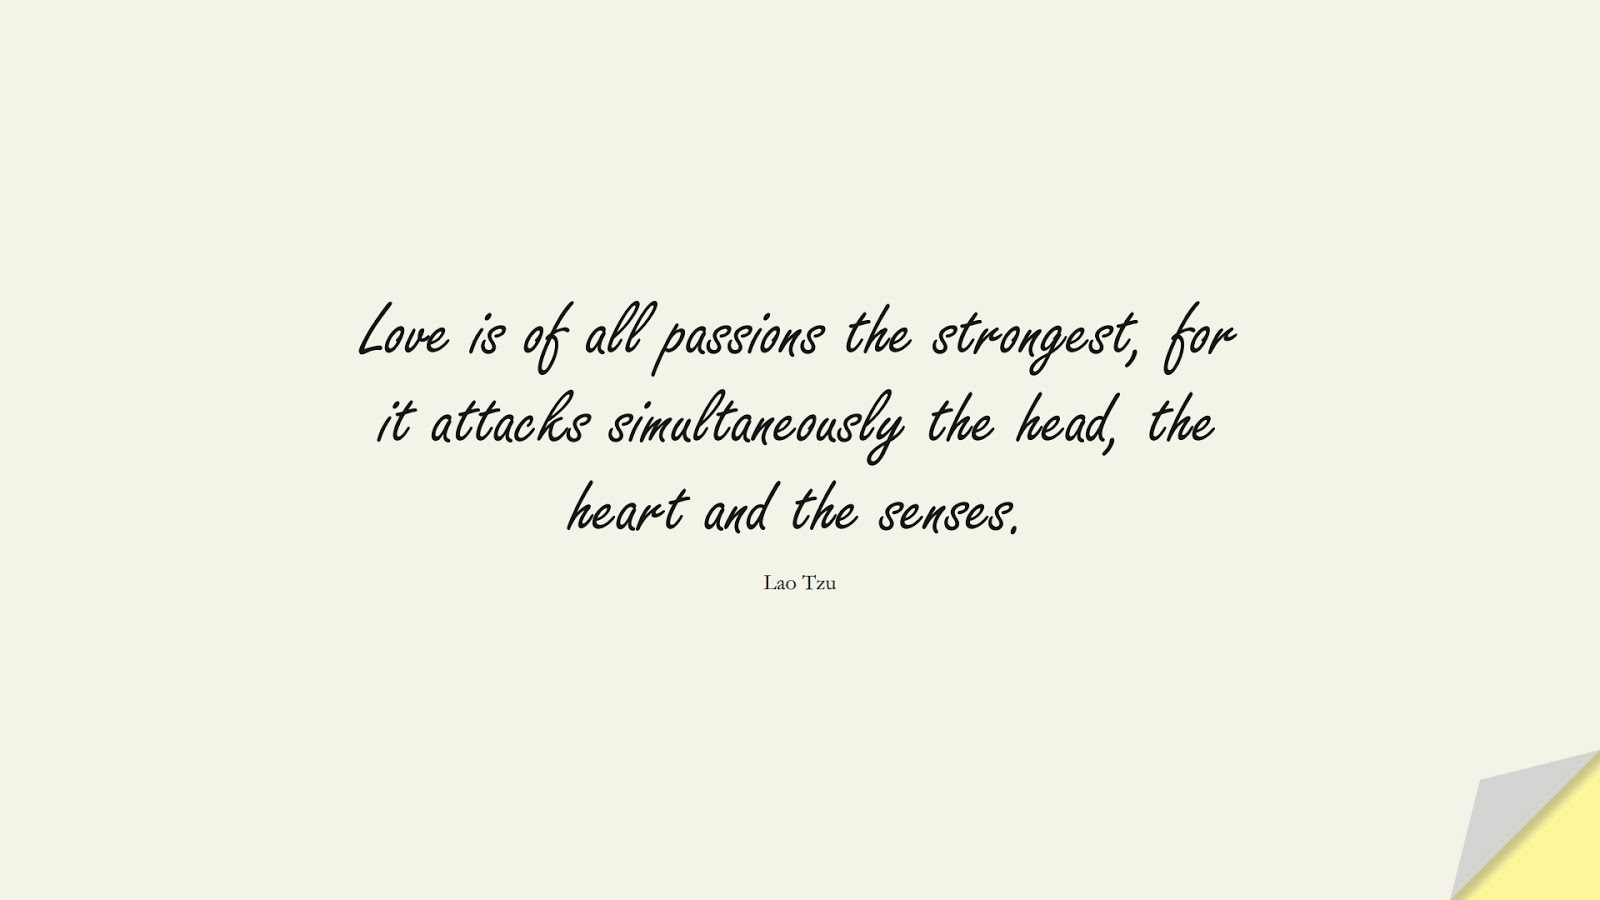 Love is of all passions the strongest, for it attacks simultaneously the head, the heart and the senses. (Lao Tzu);  #LifeQuotes